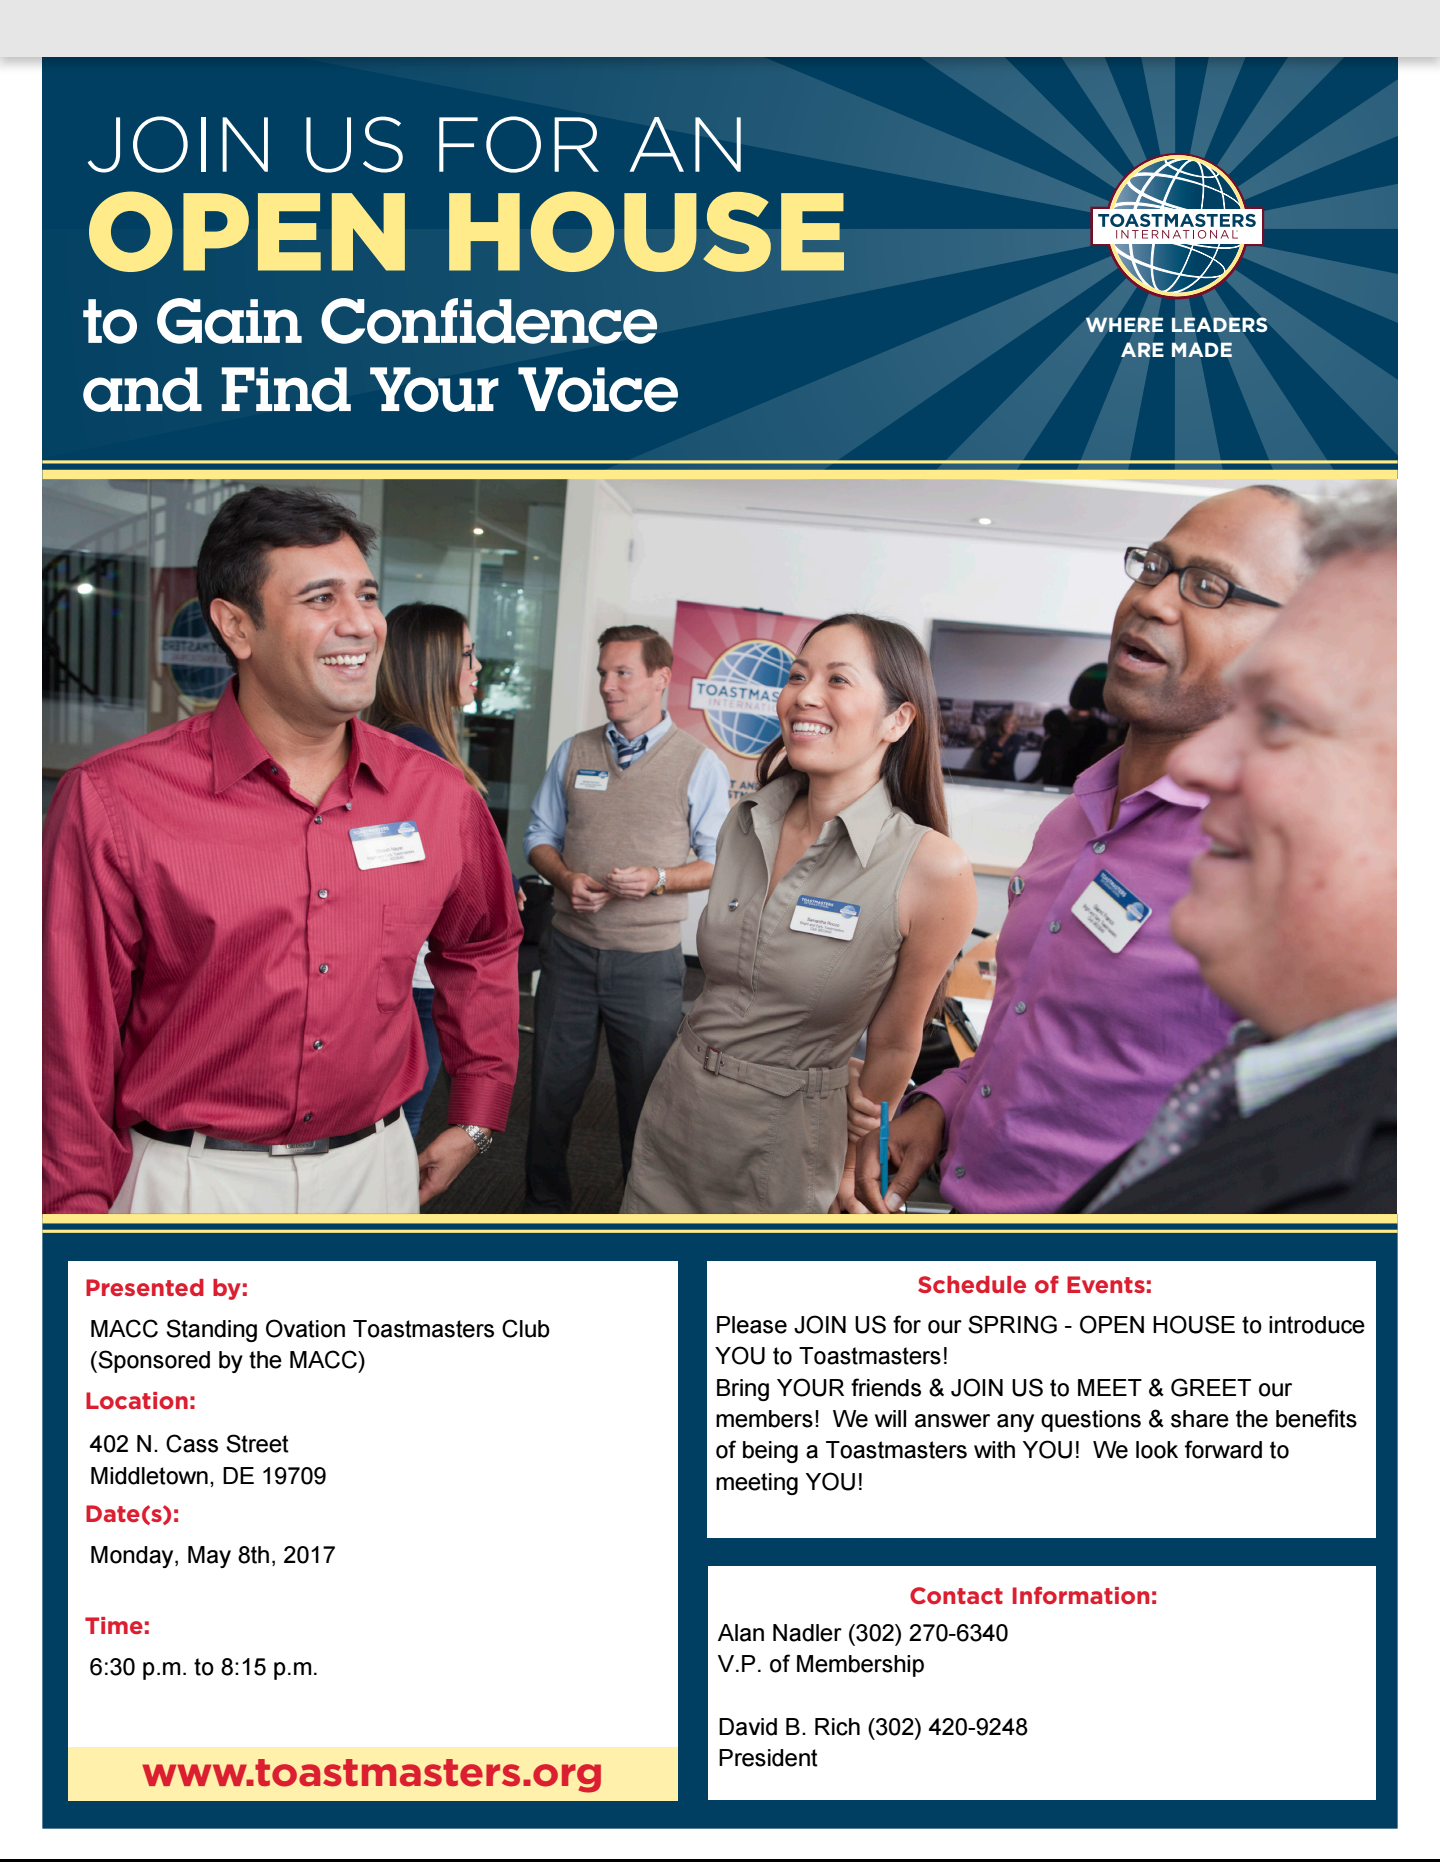 Photos macc standing ovation toastmasters club for Open house photos